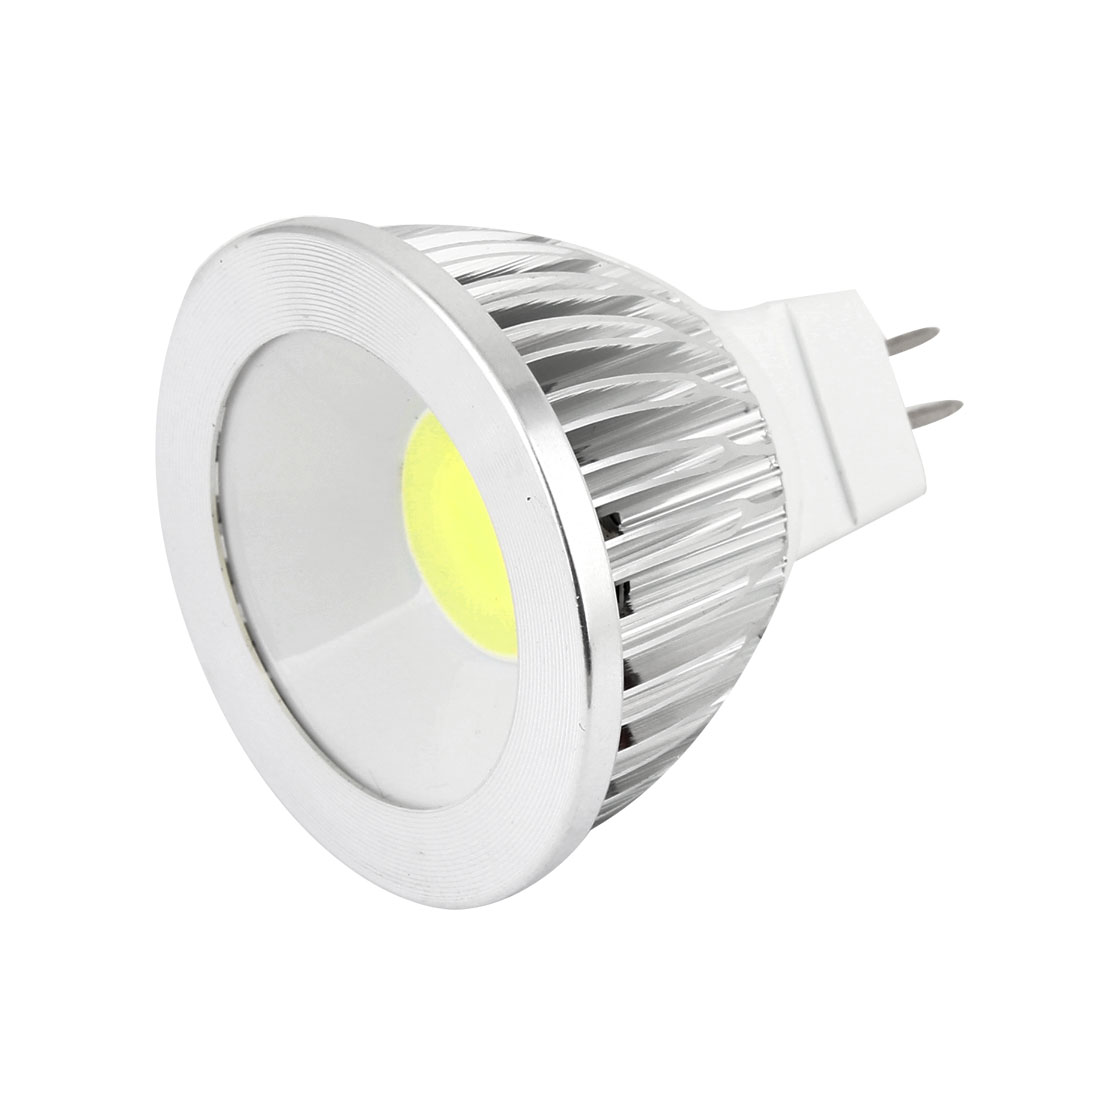 AC 12V 6W MR16 Non-dimmable Cool White Light COB LED Downlight Spotlight Bulb